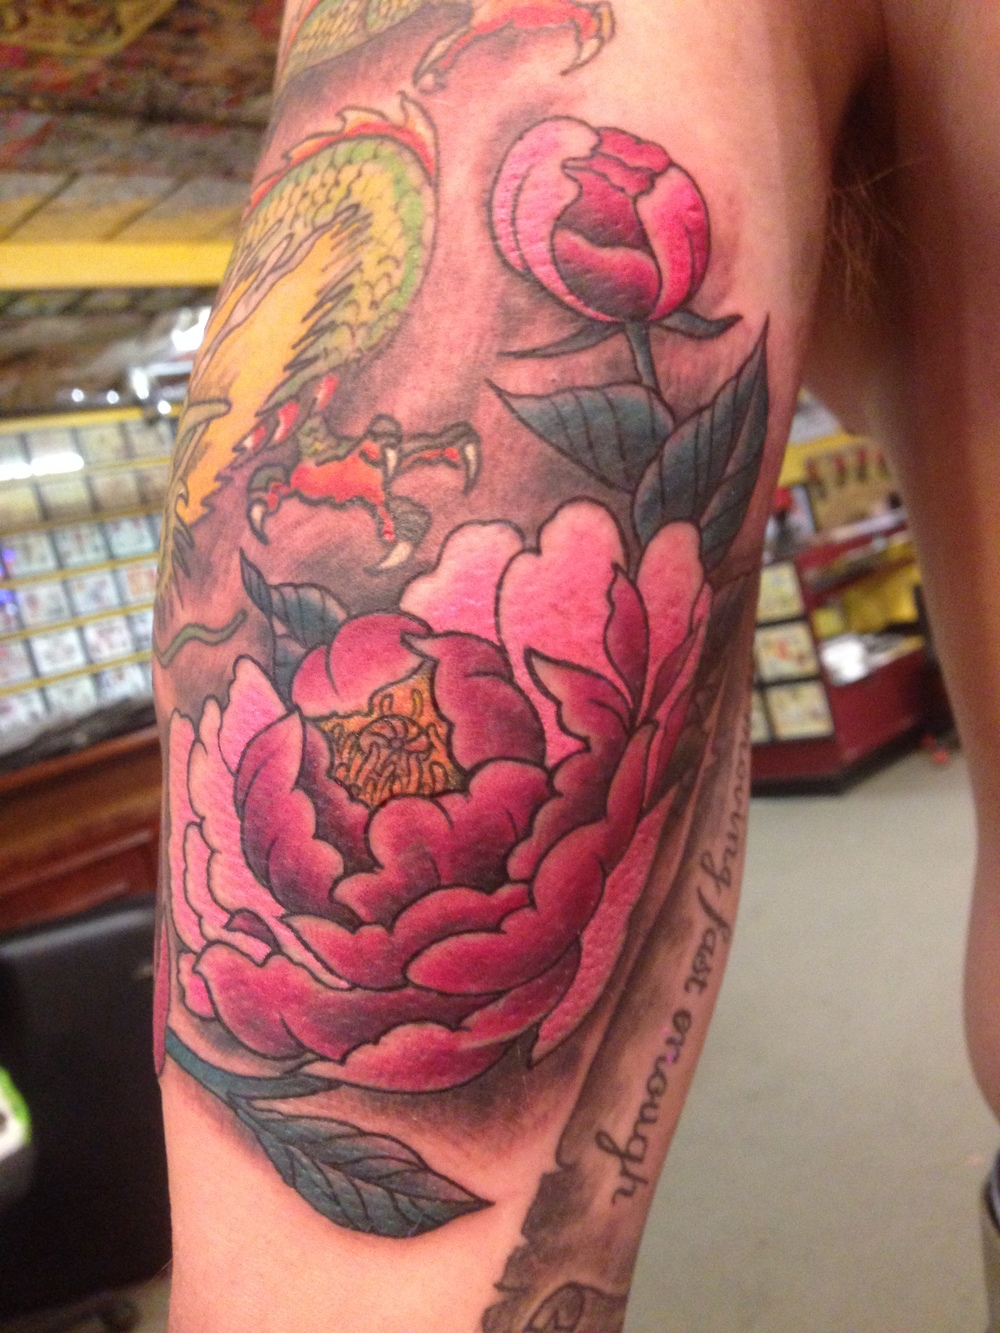 matt-lucci-tattoo-flower-tattoo-design-sleeve.JPG